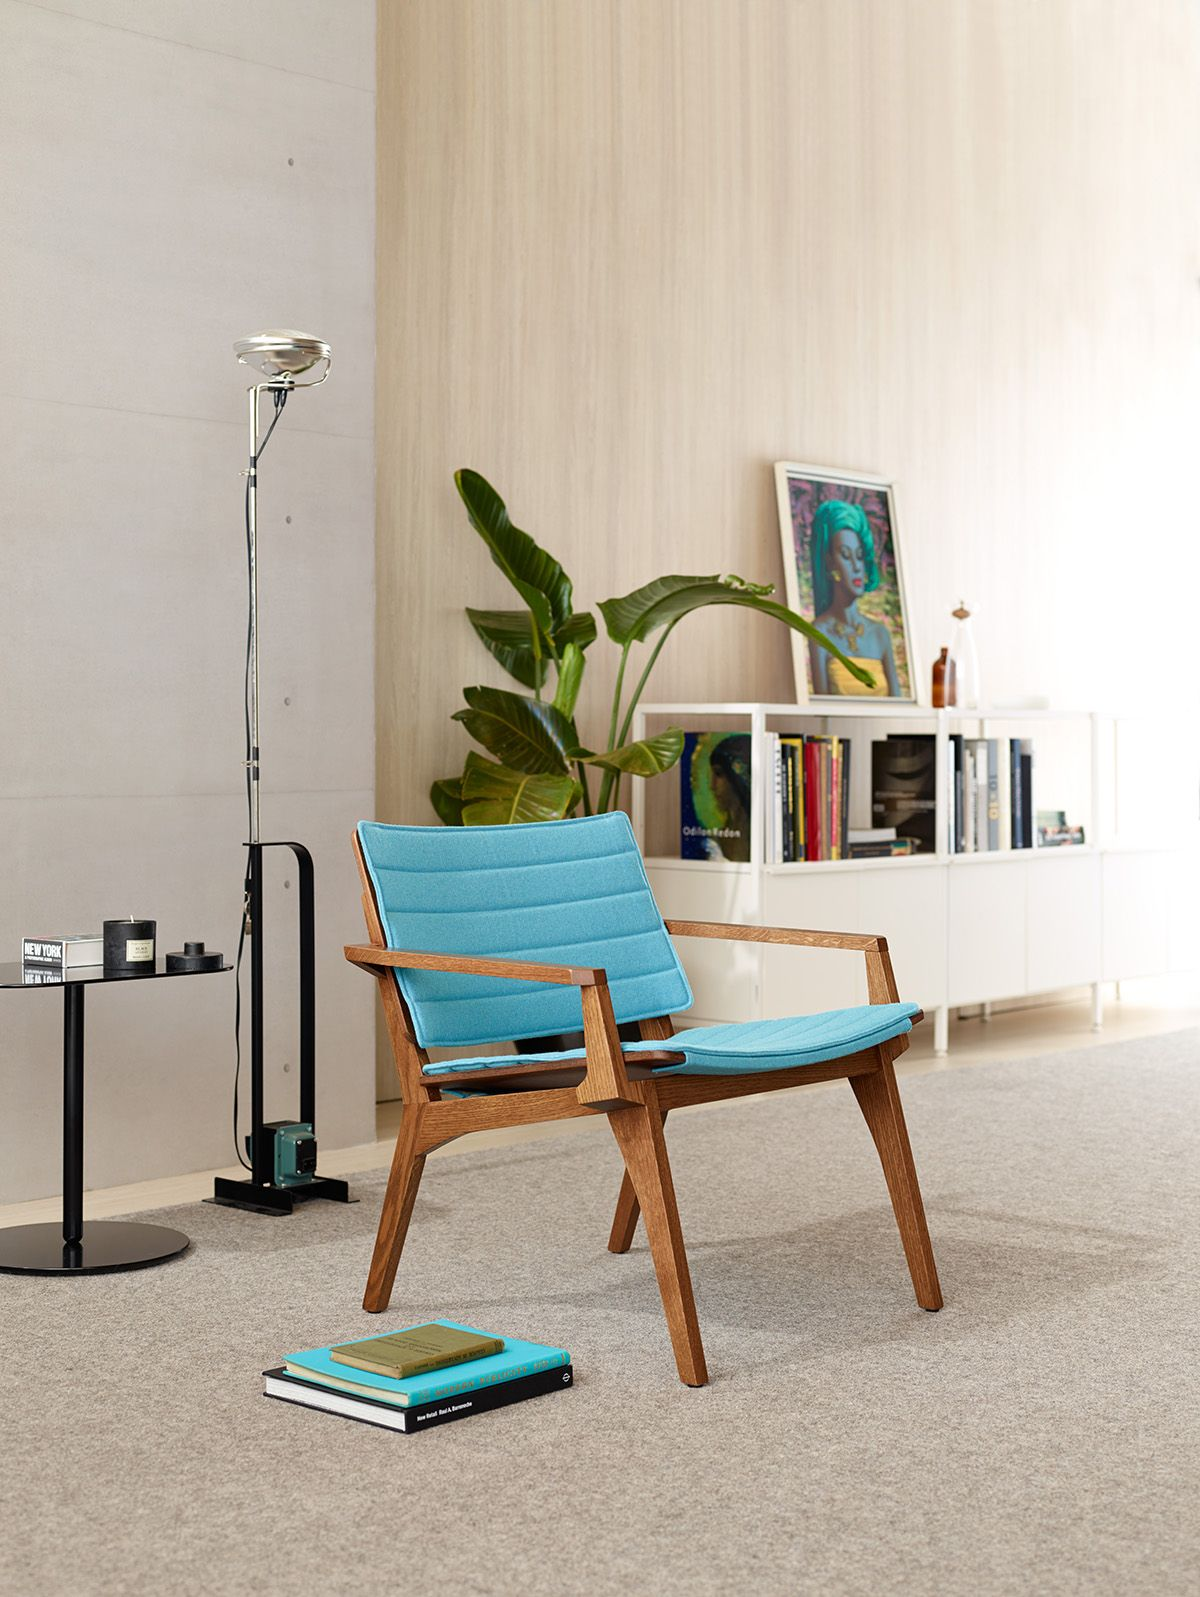 Office Furniture Maui Chair From Schiavello